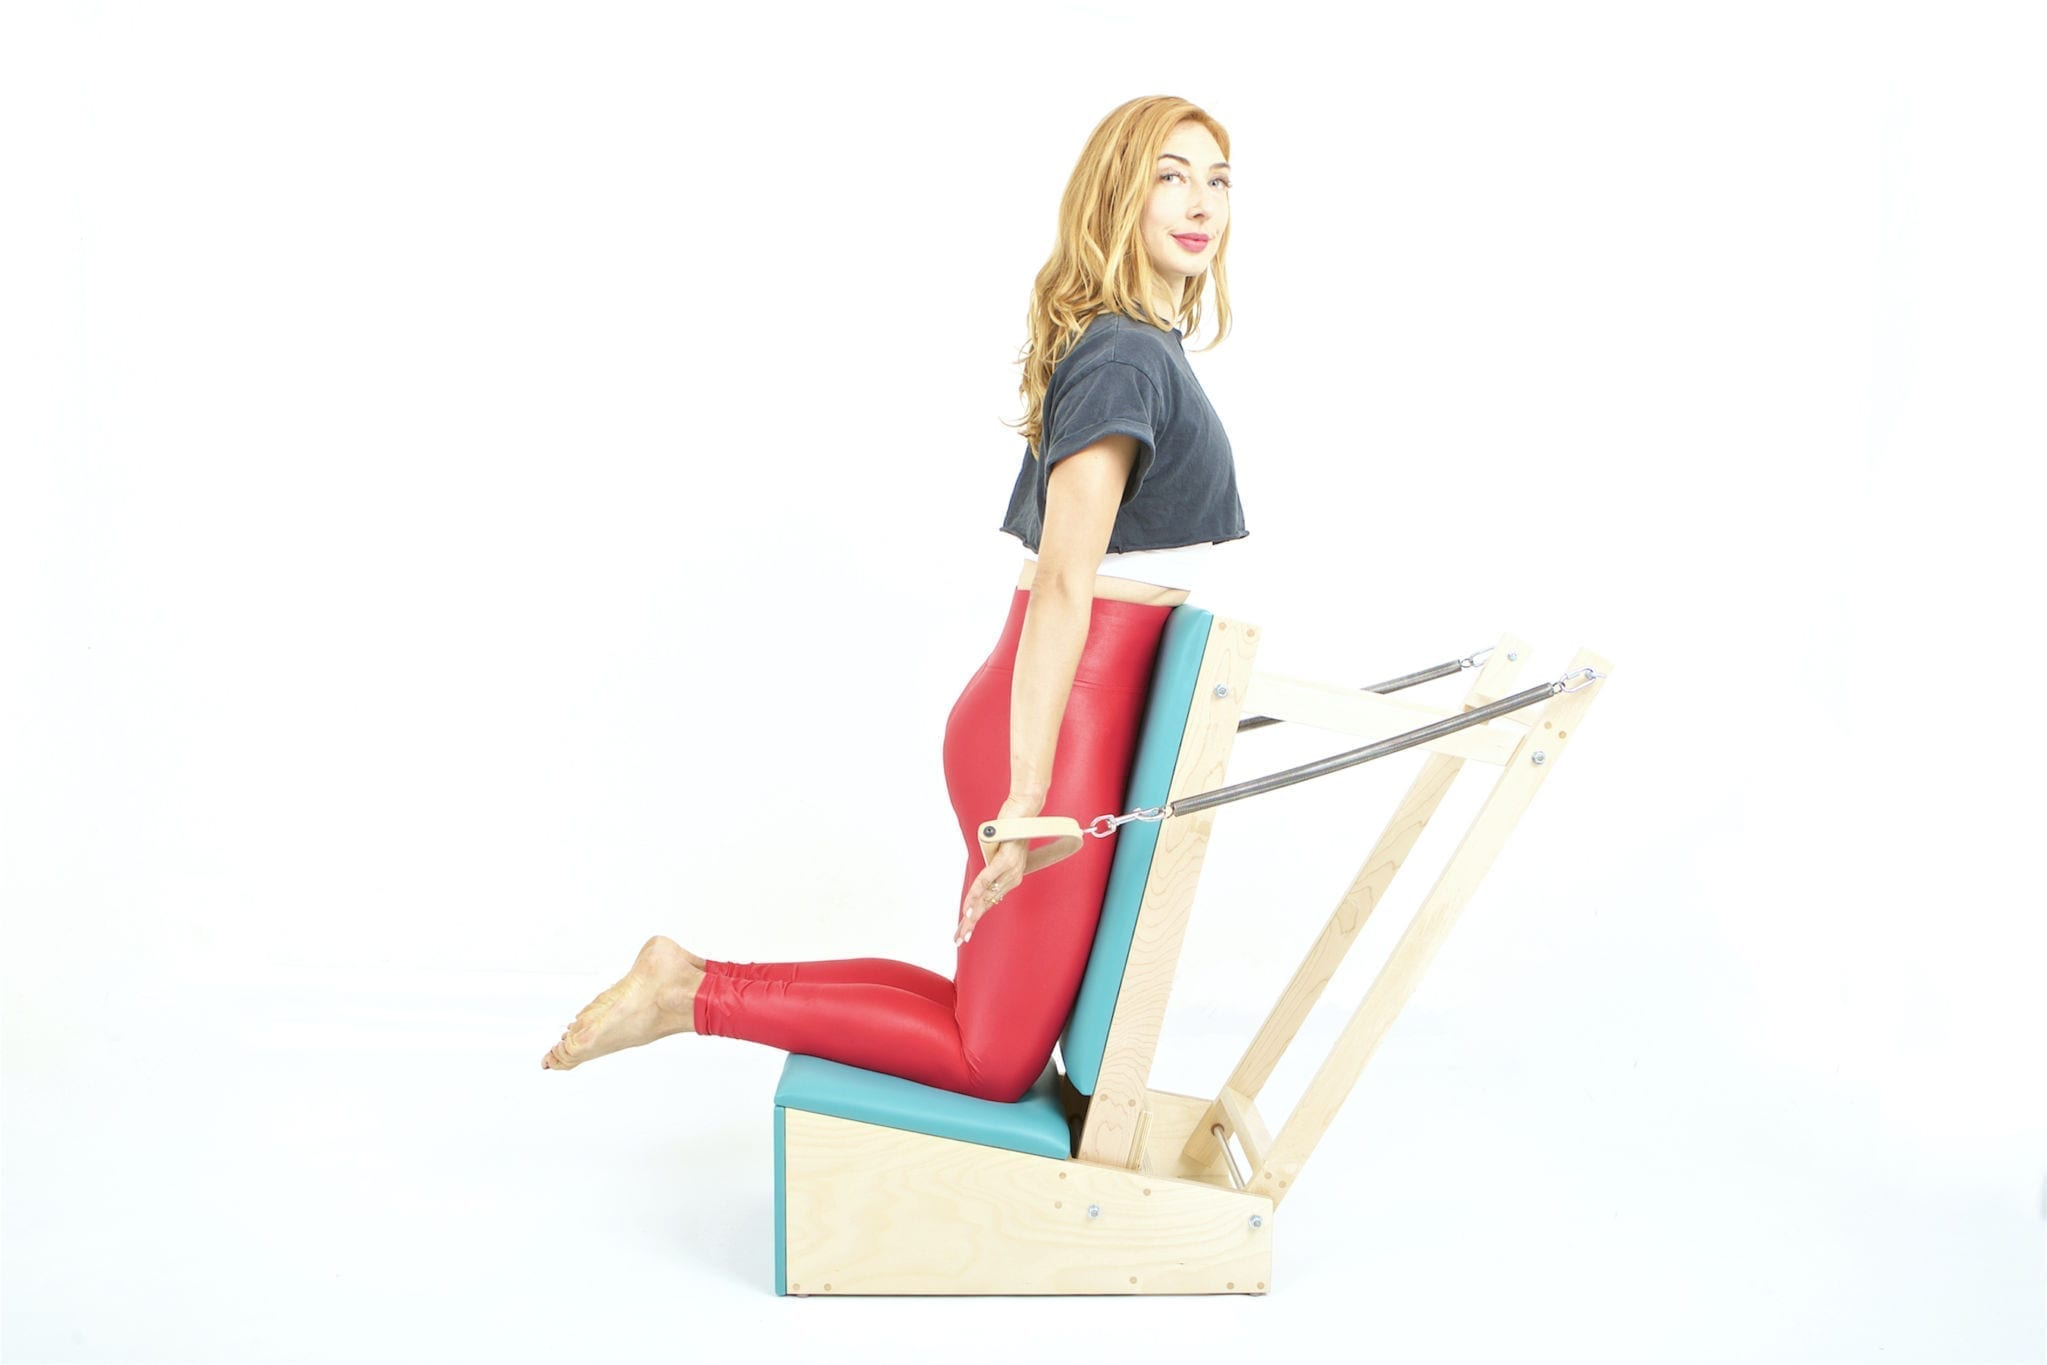 Chest Expansion on the Arm Chair | Online Pilates Classes